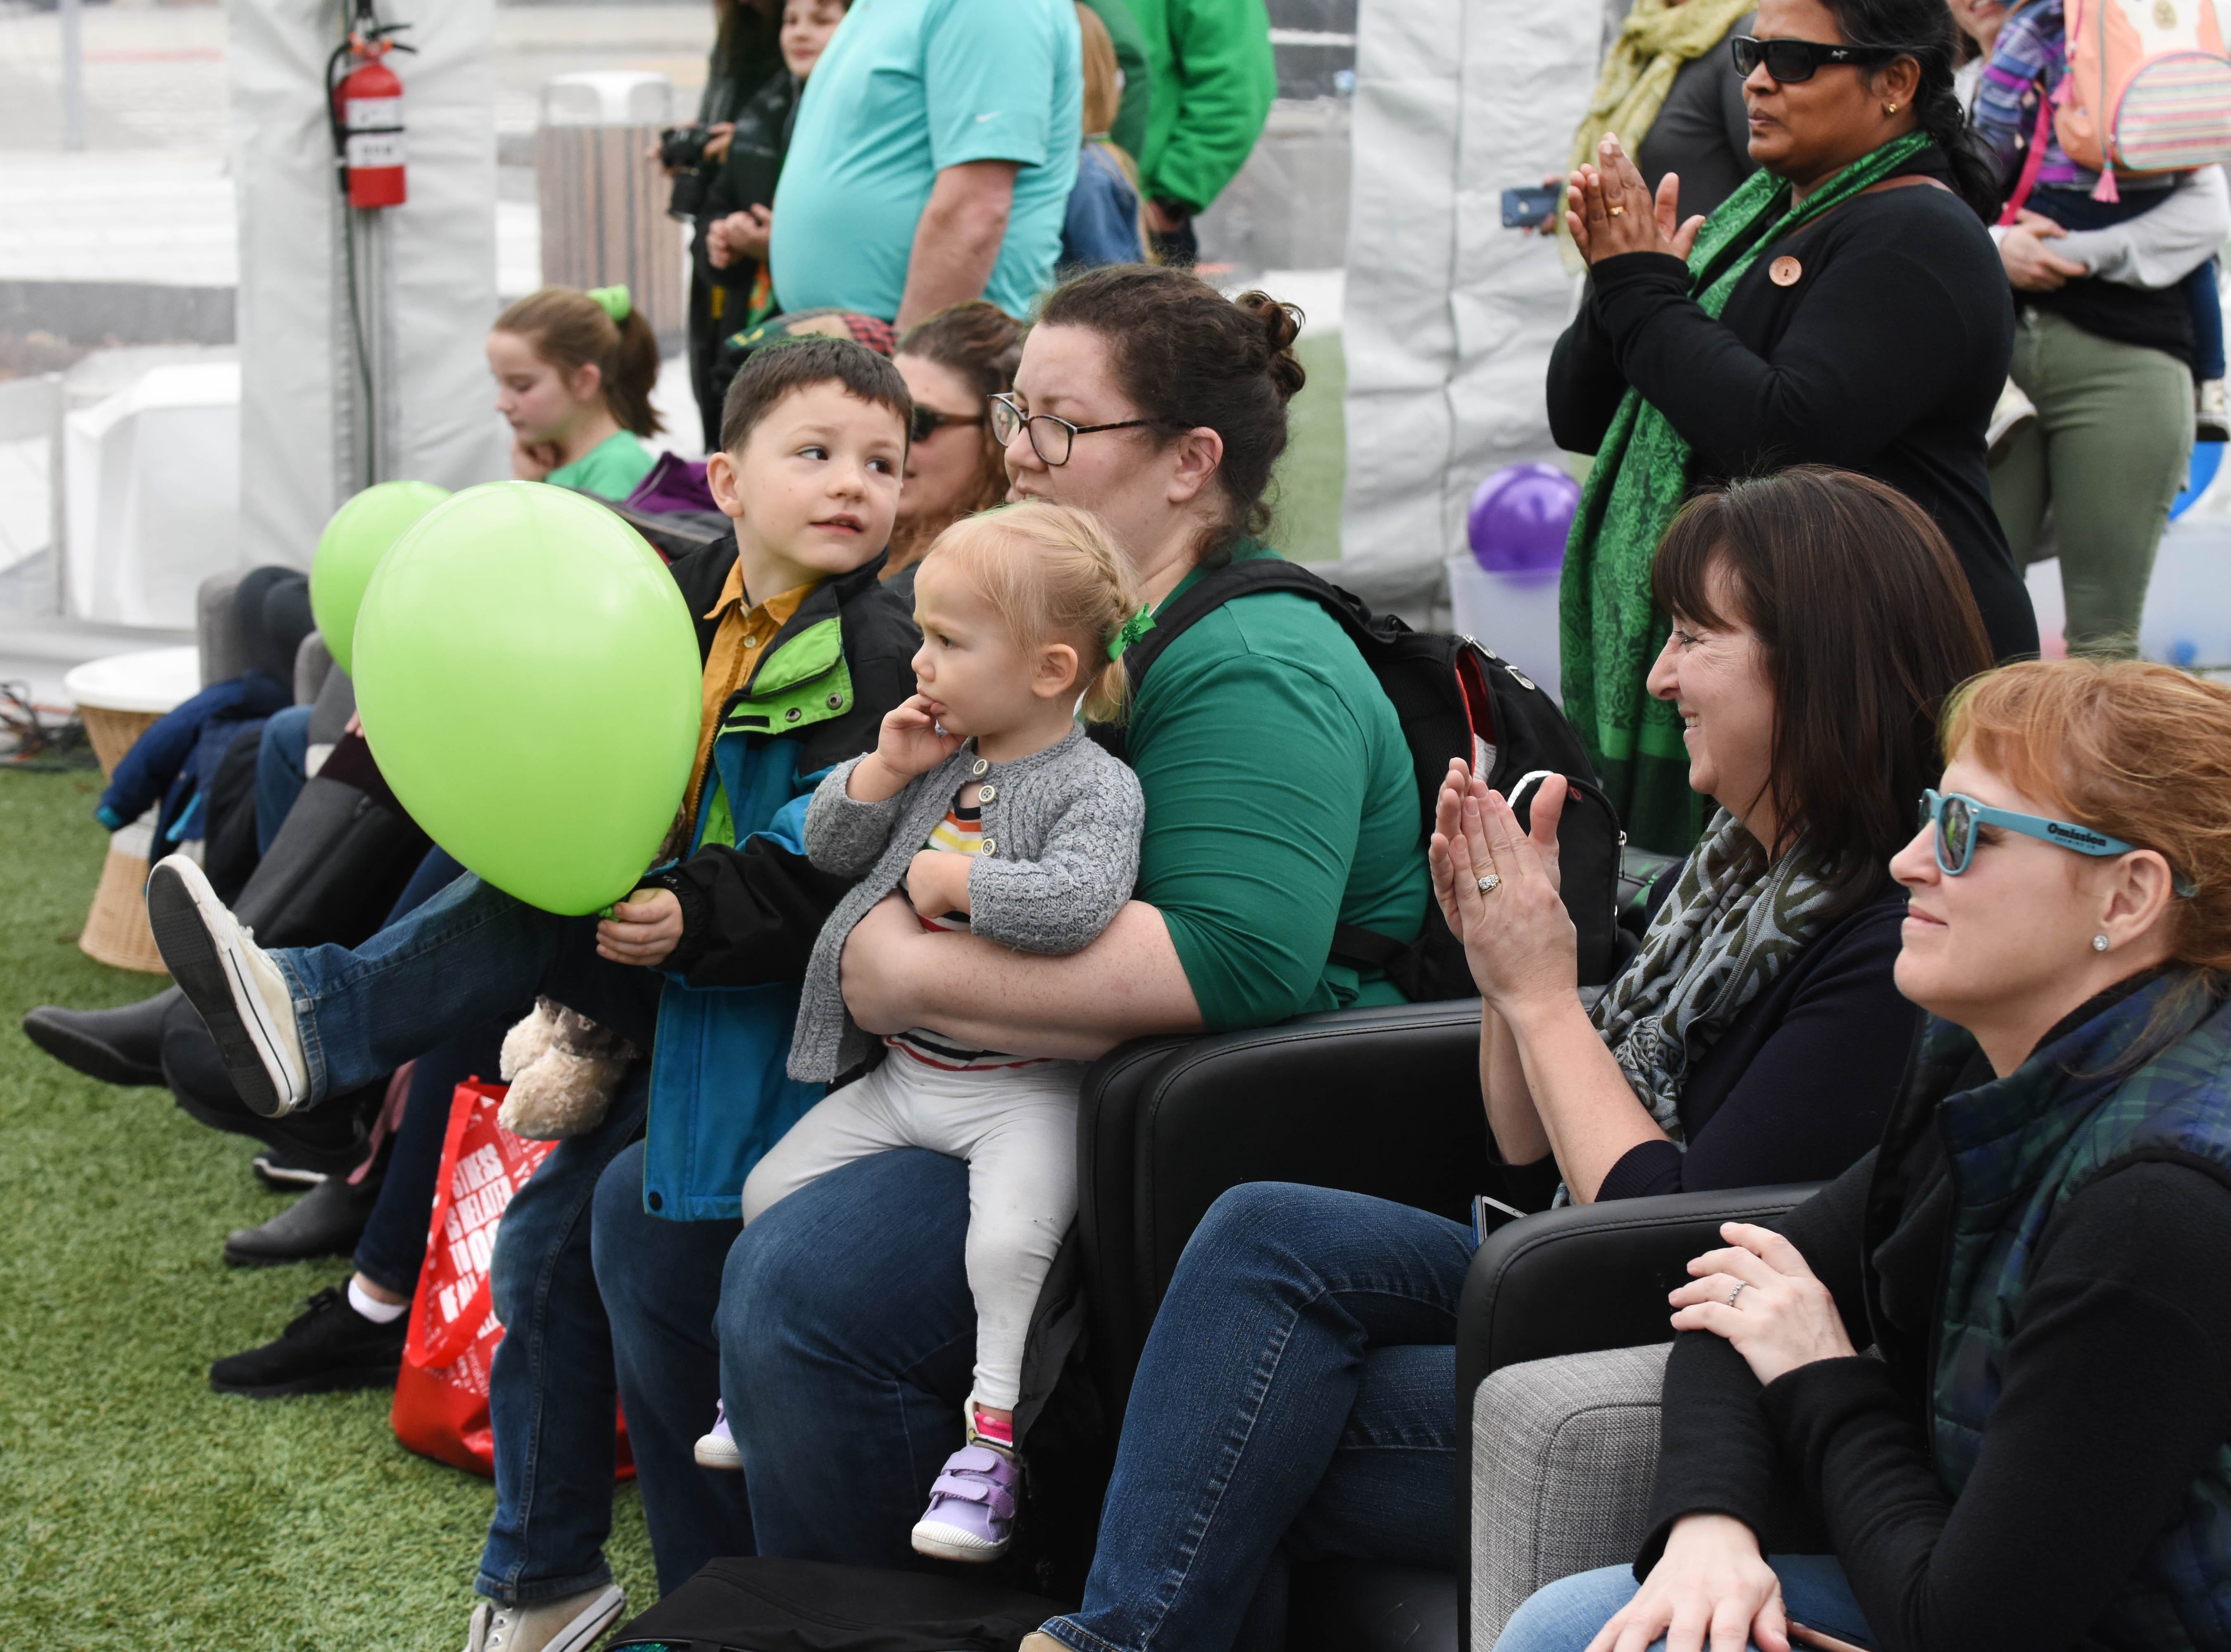 Family and friends watch the Tim O'Hare Irish Dance group.